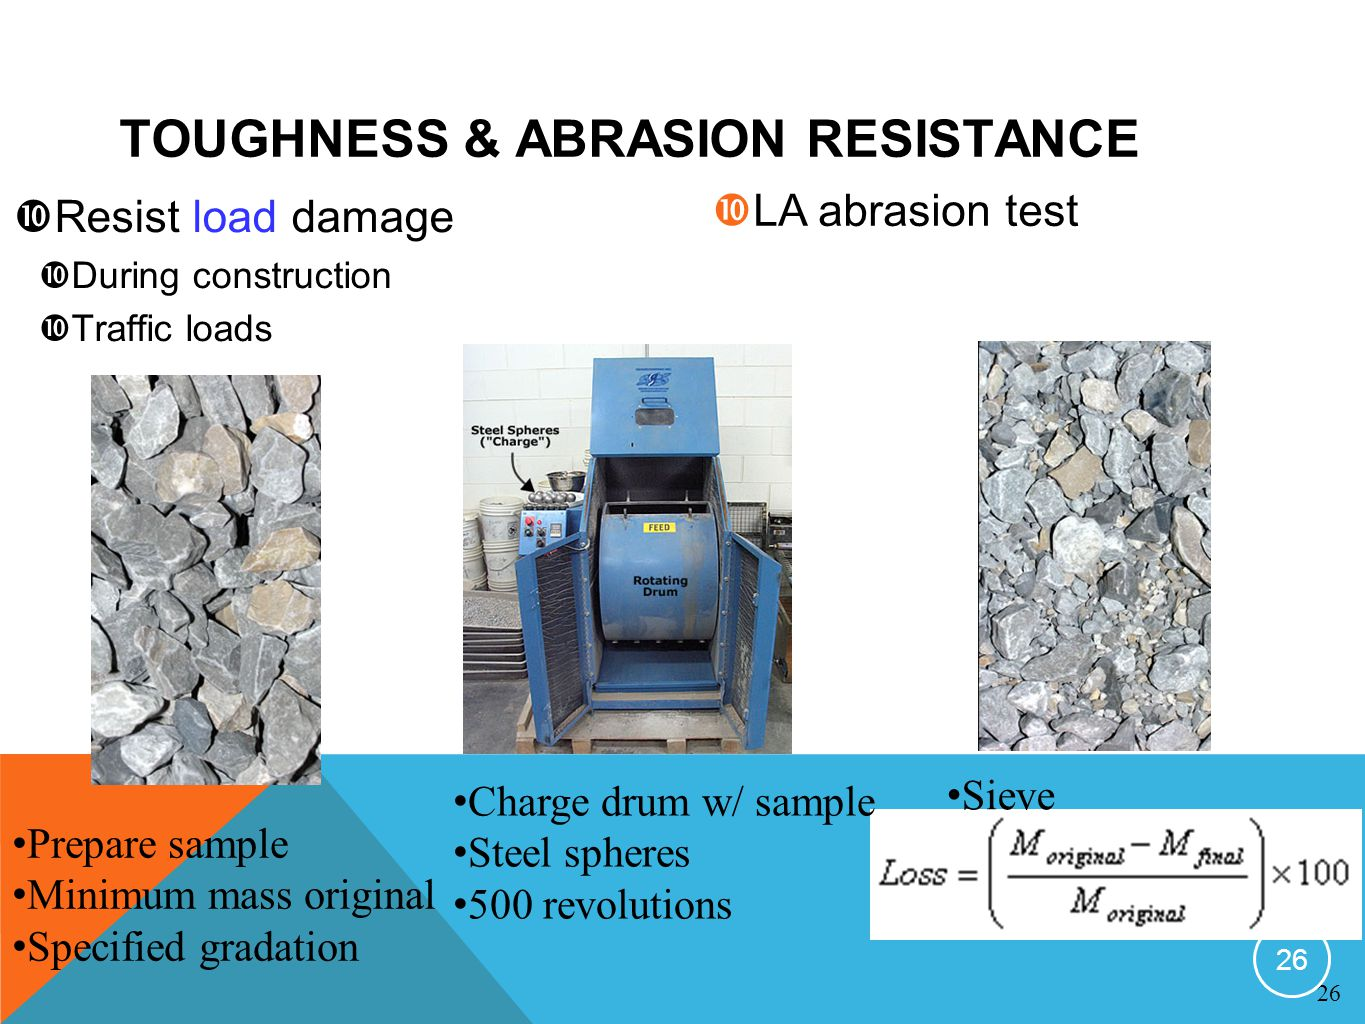 Resist load damage During construction Traffic loads LA abrasion test TOUGHNESS & ABRASION RESISTANCE Prepare sample Minimum mass original Specified gradation Charge drum w/ sample Steel spheres 500 revolutions Sieve 26